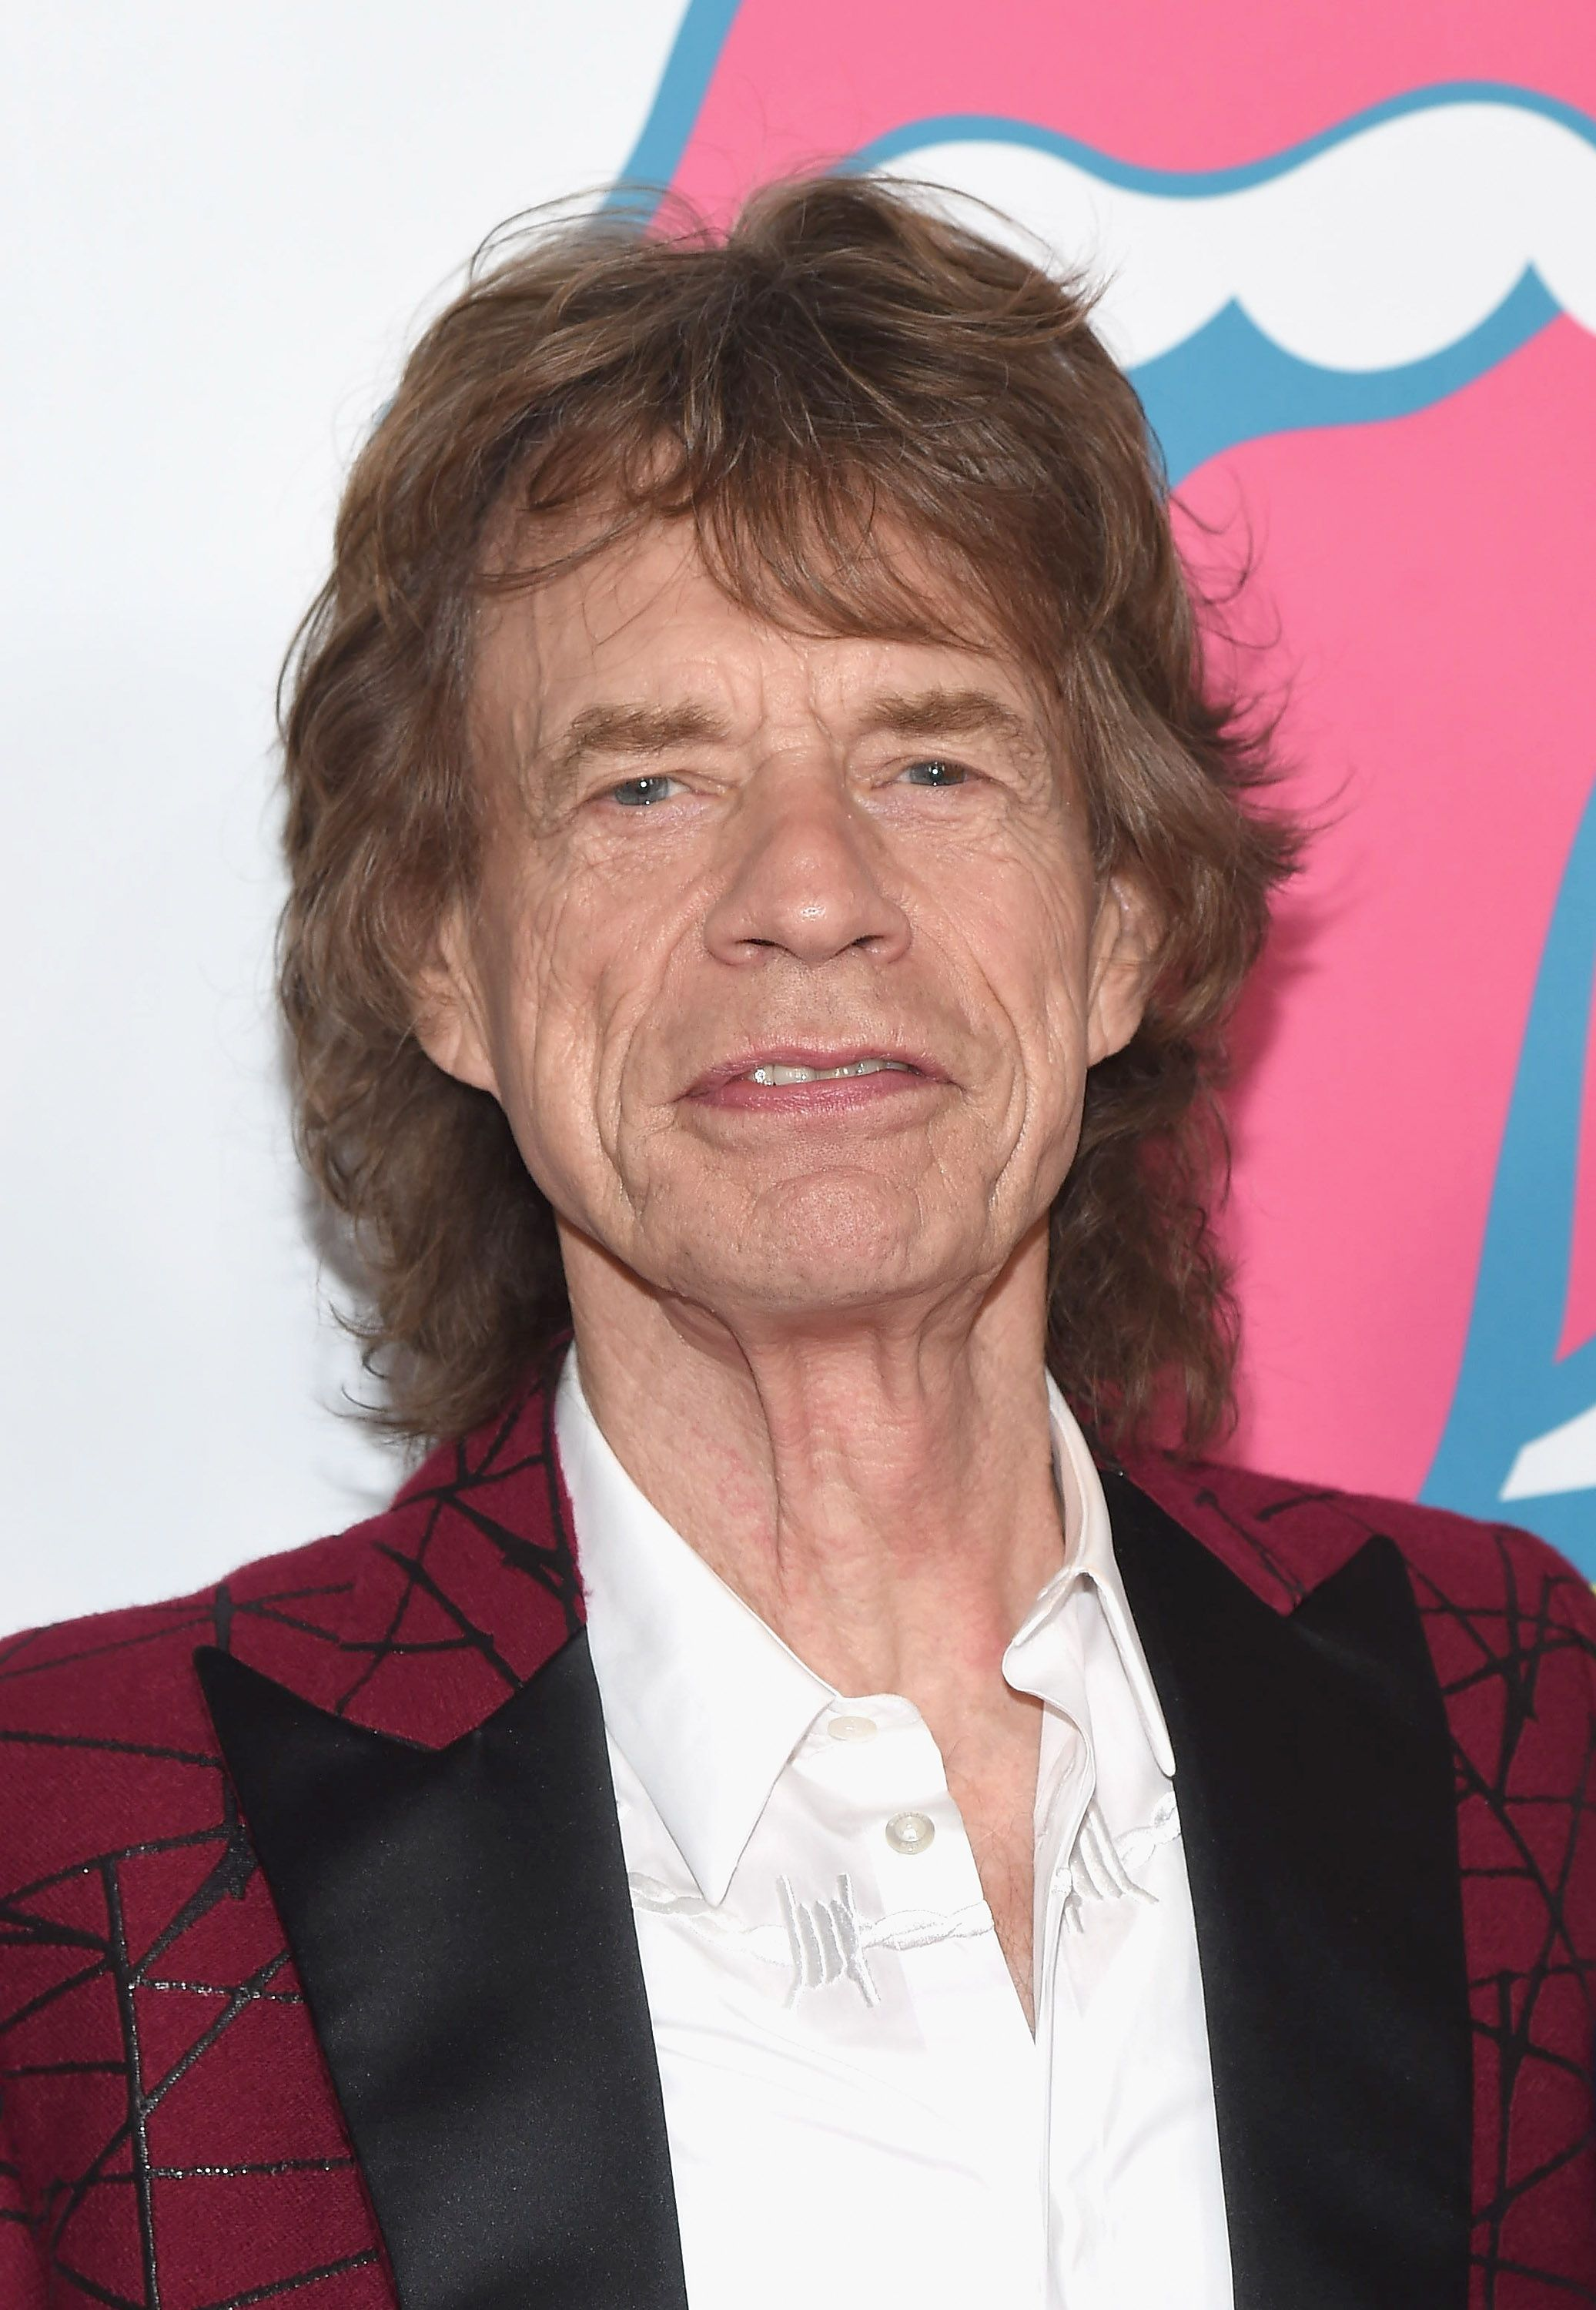 Mick Jagger at 72 Somehow, the musician has maintained his classic mane all these decades later.